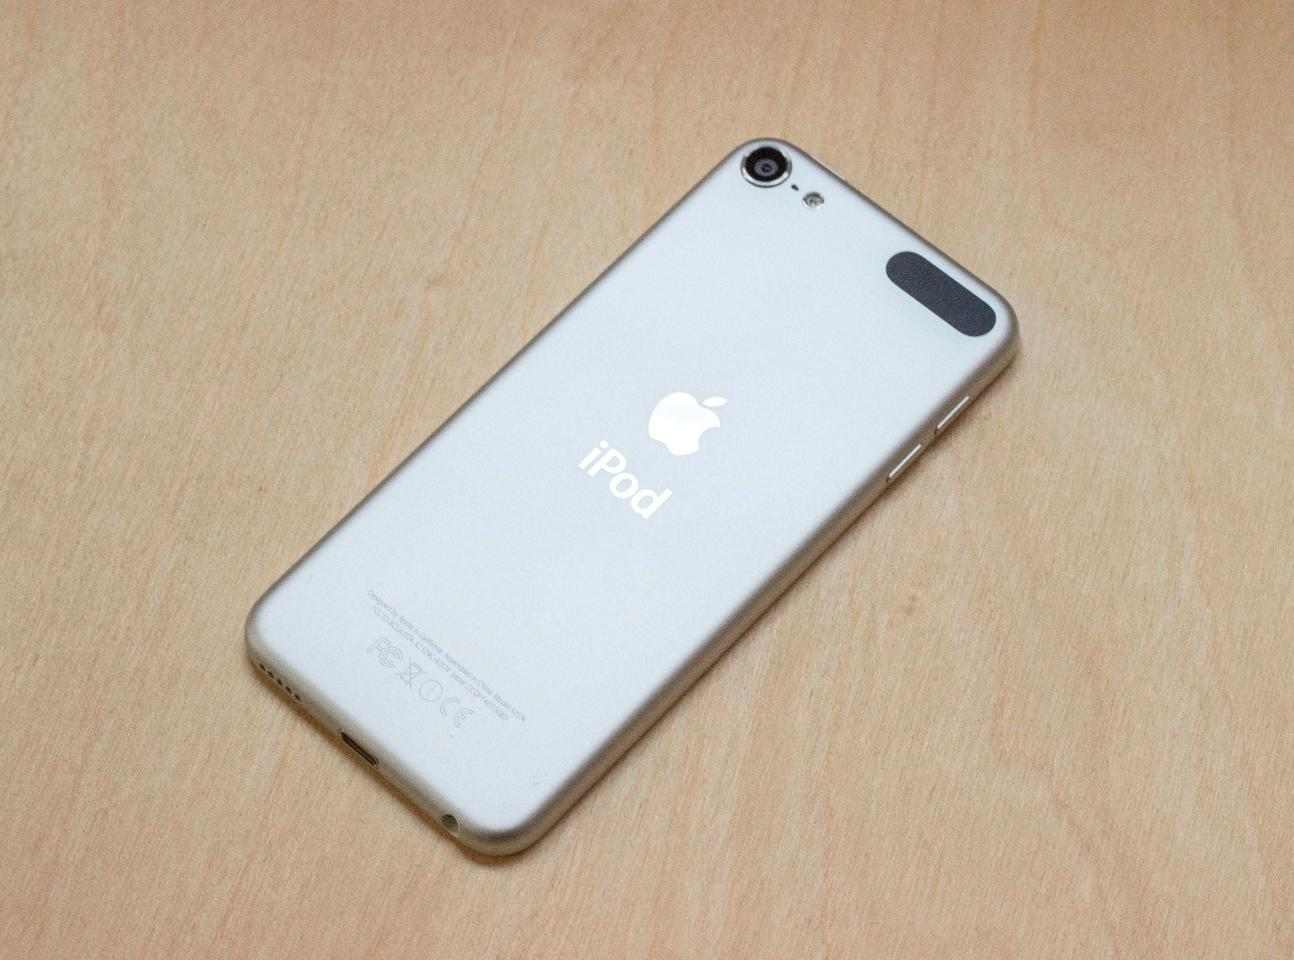 The new iPod touch's aluminum build, which is nearly identical to the 5th-generation model (